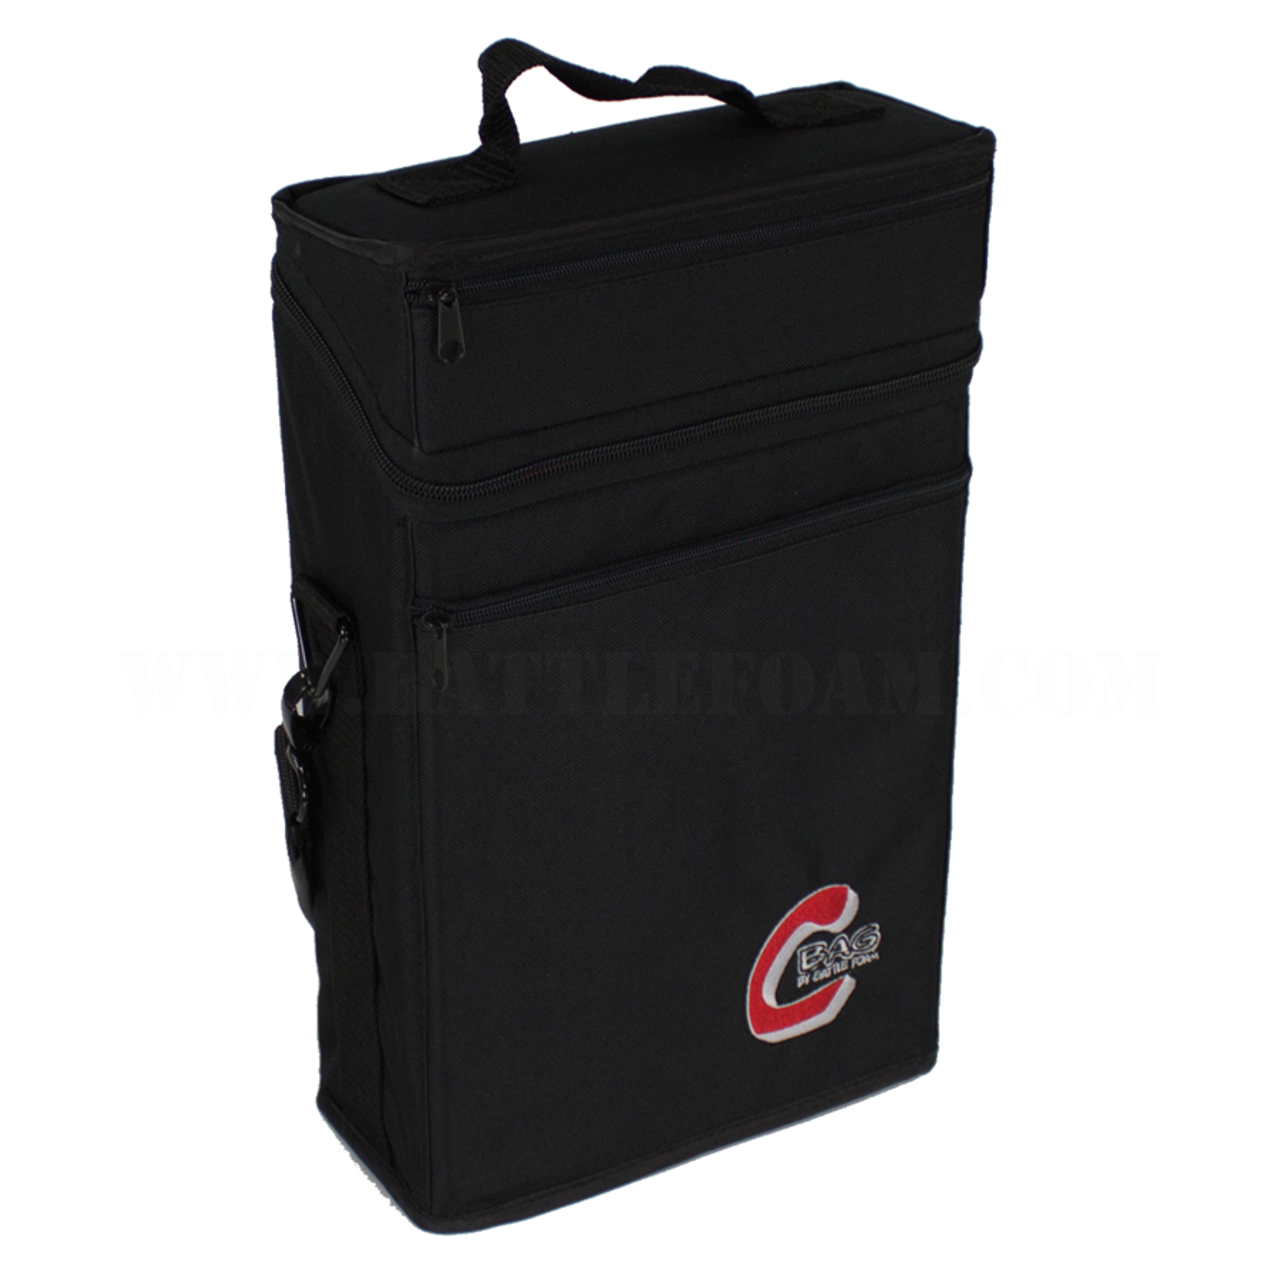 C Bag By Battle Foam Battle Foam Battle foam is the miniature gaming industry's leading custom bag and foam manufacturer. c bag by battle foam